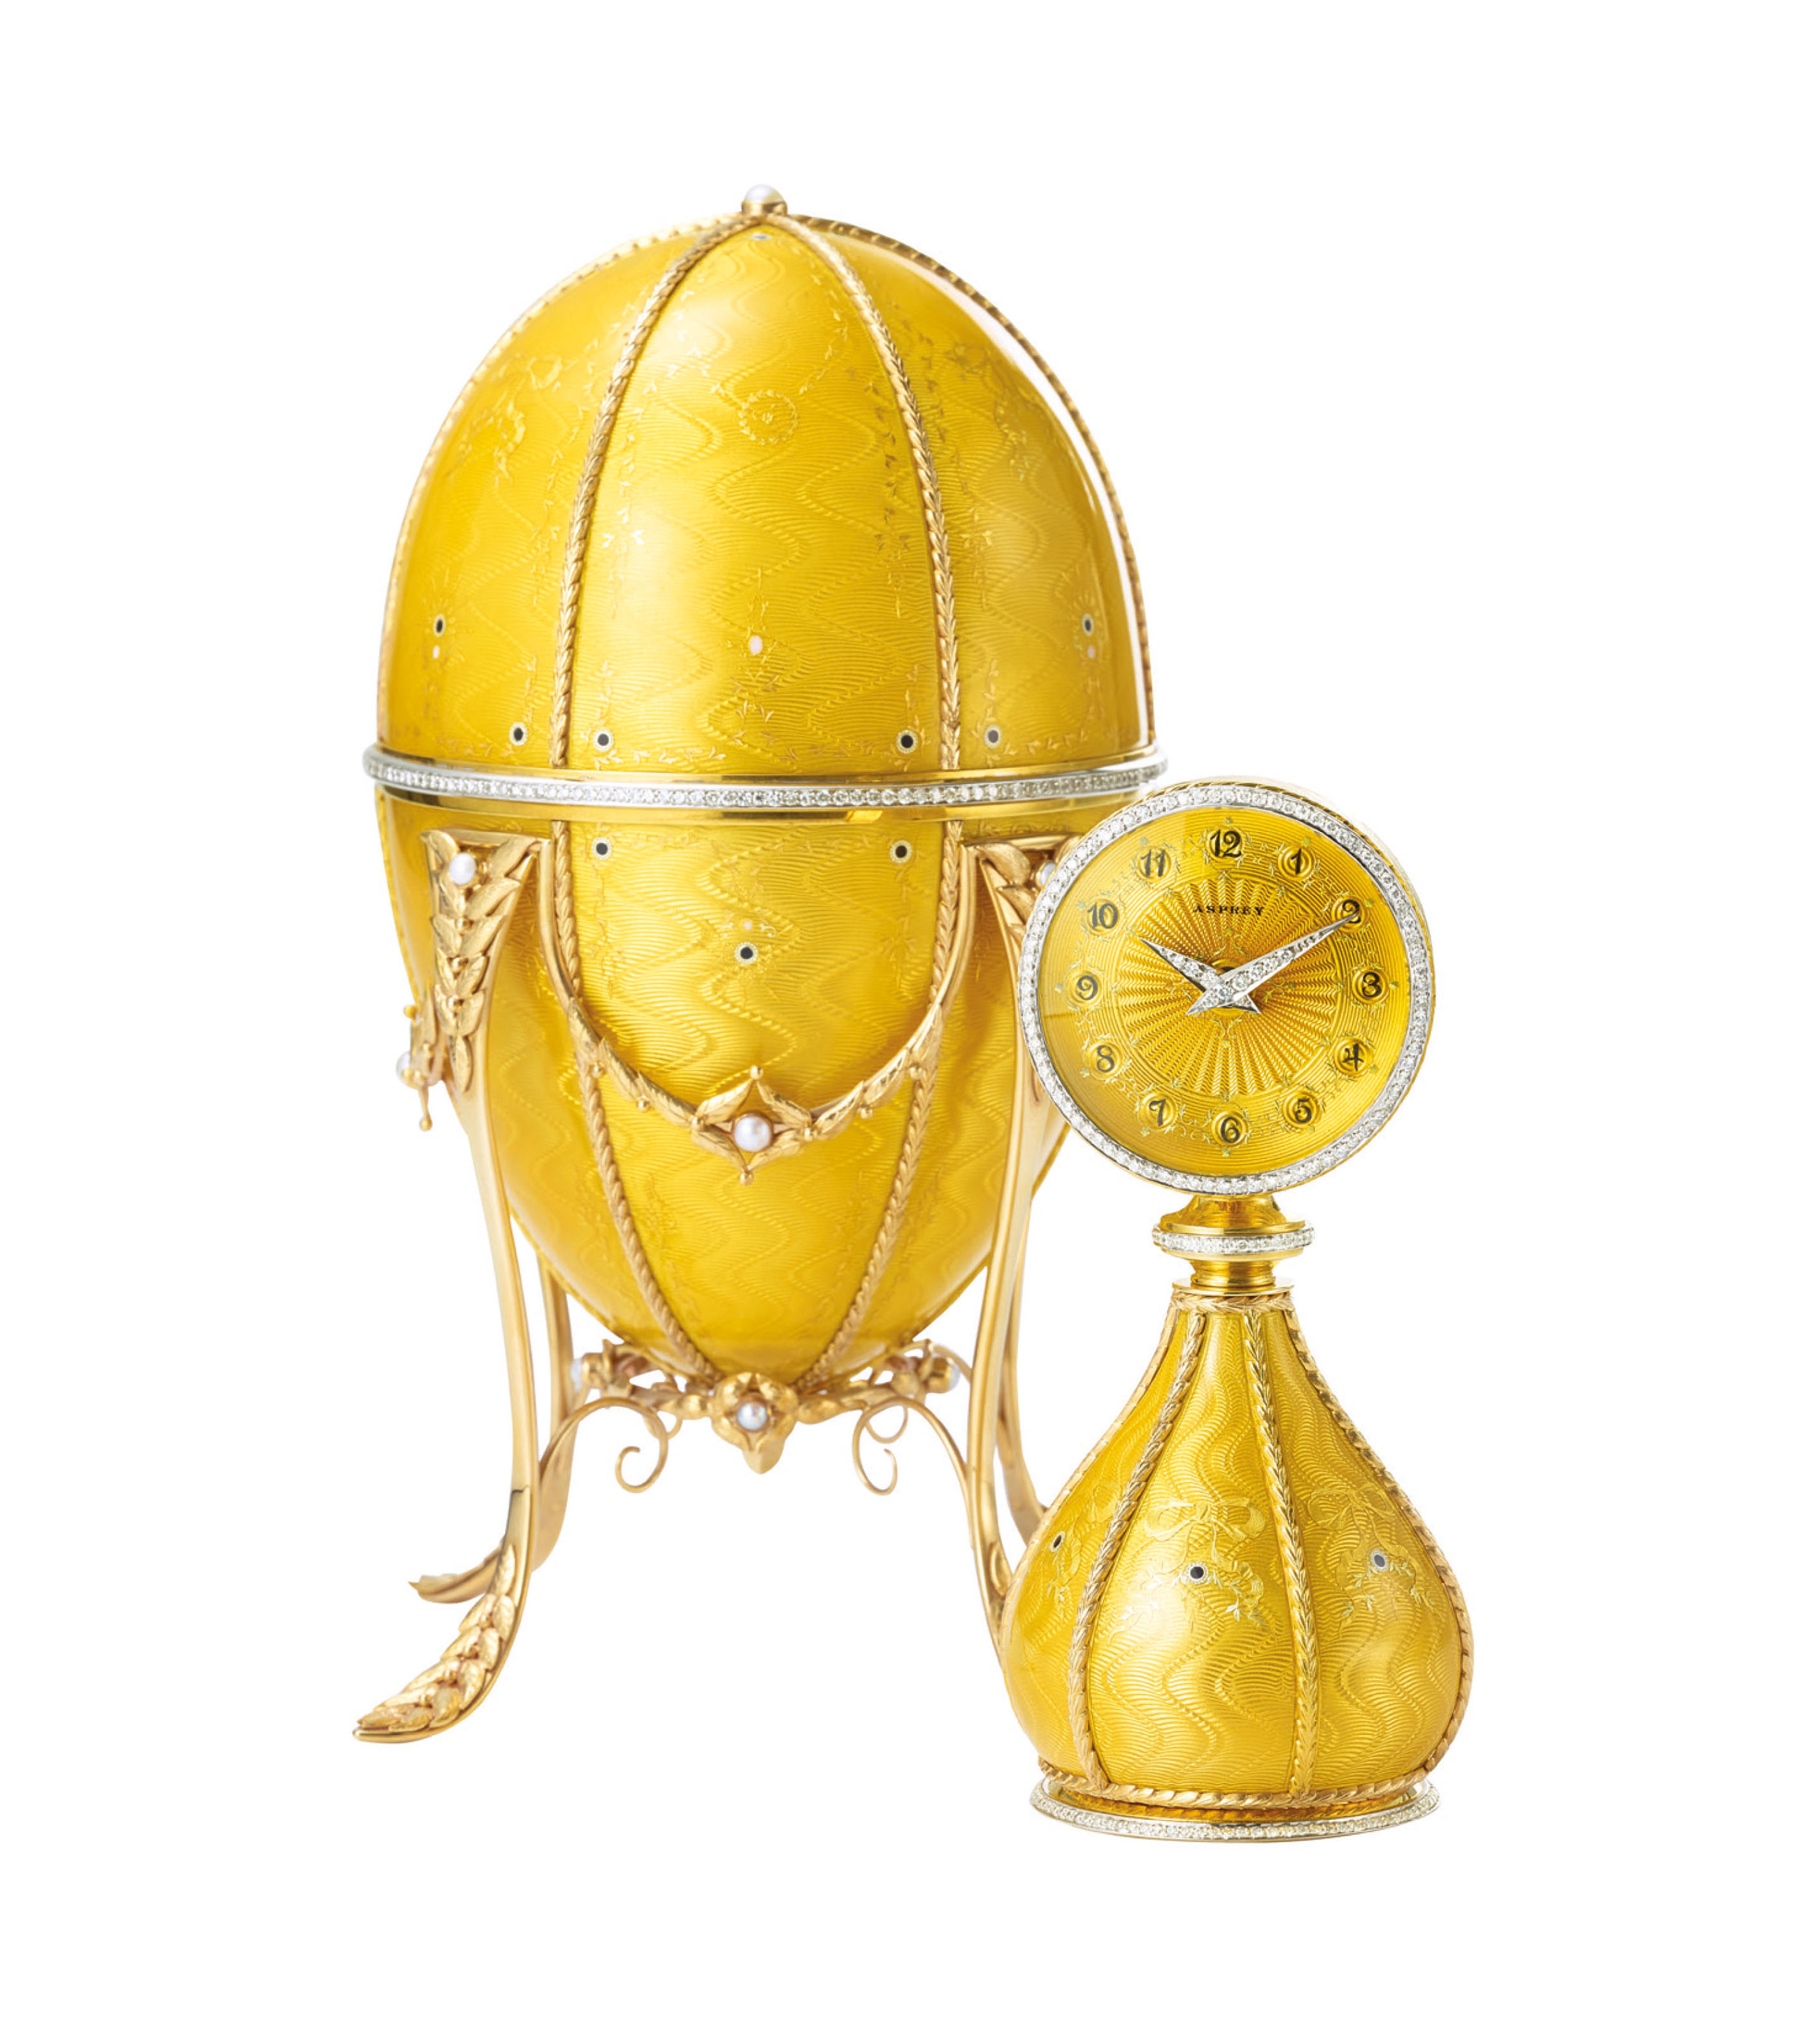 ASPREY. A FINE AND VERY RARE 18K GOLD, ENAMEL, DIAMOND AND PEARL-SET EGG-SHAPED DESK CLOCK